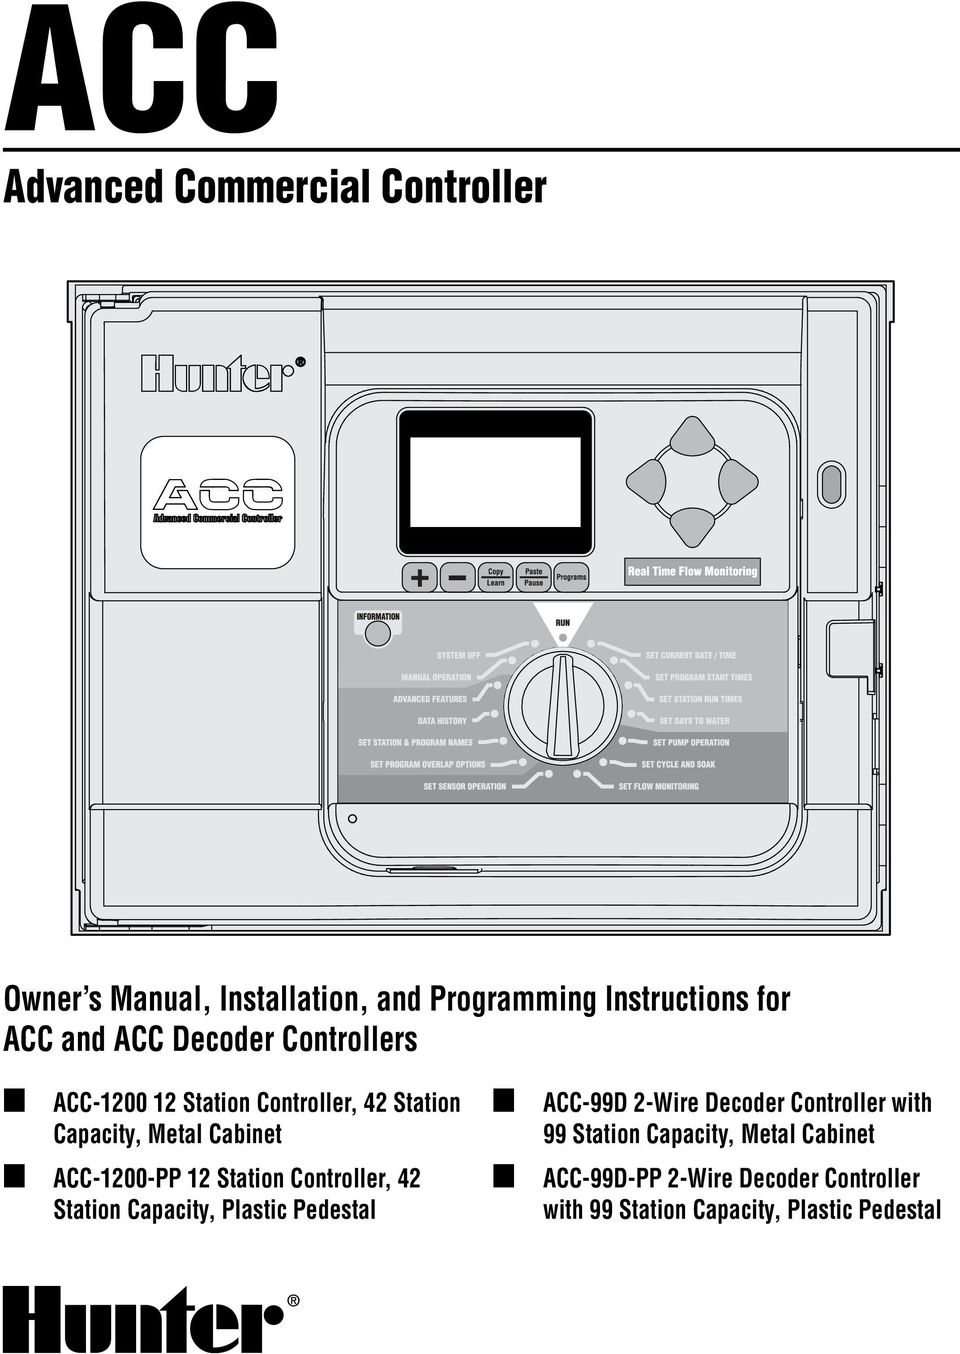 medium resolution of station controller 42 station capacity plastic pedestal acc 99d 2 wire decoder